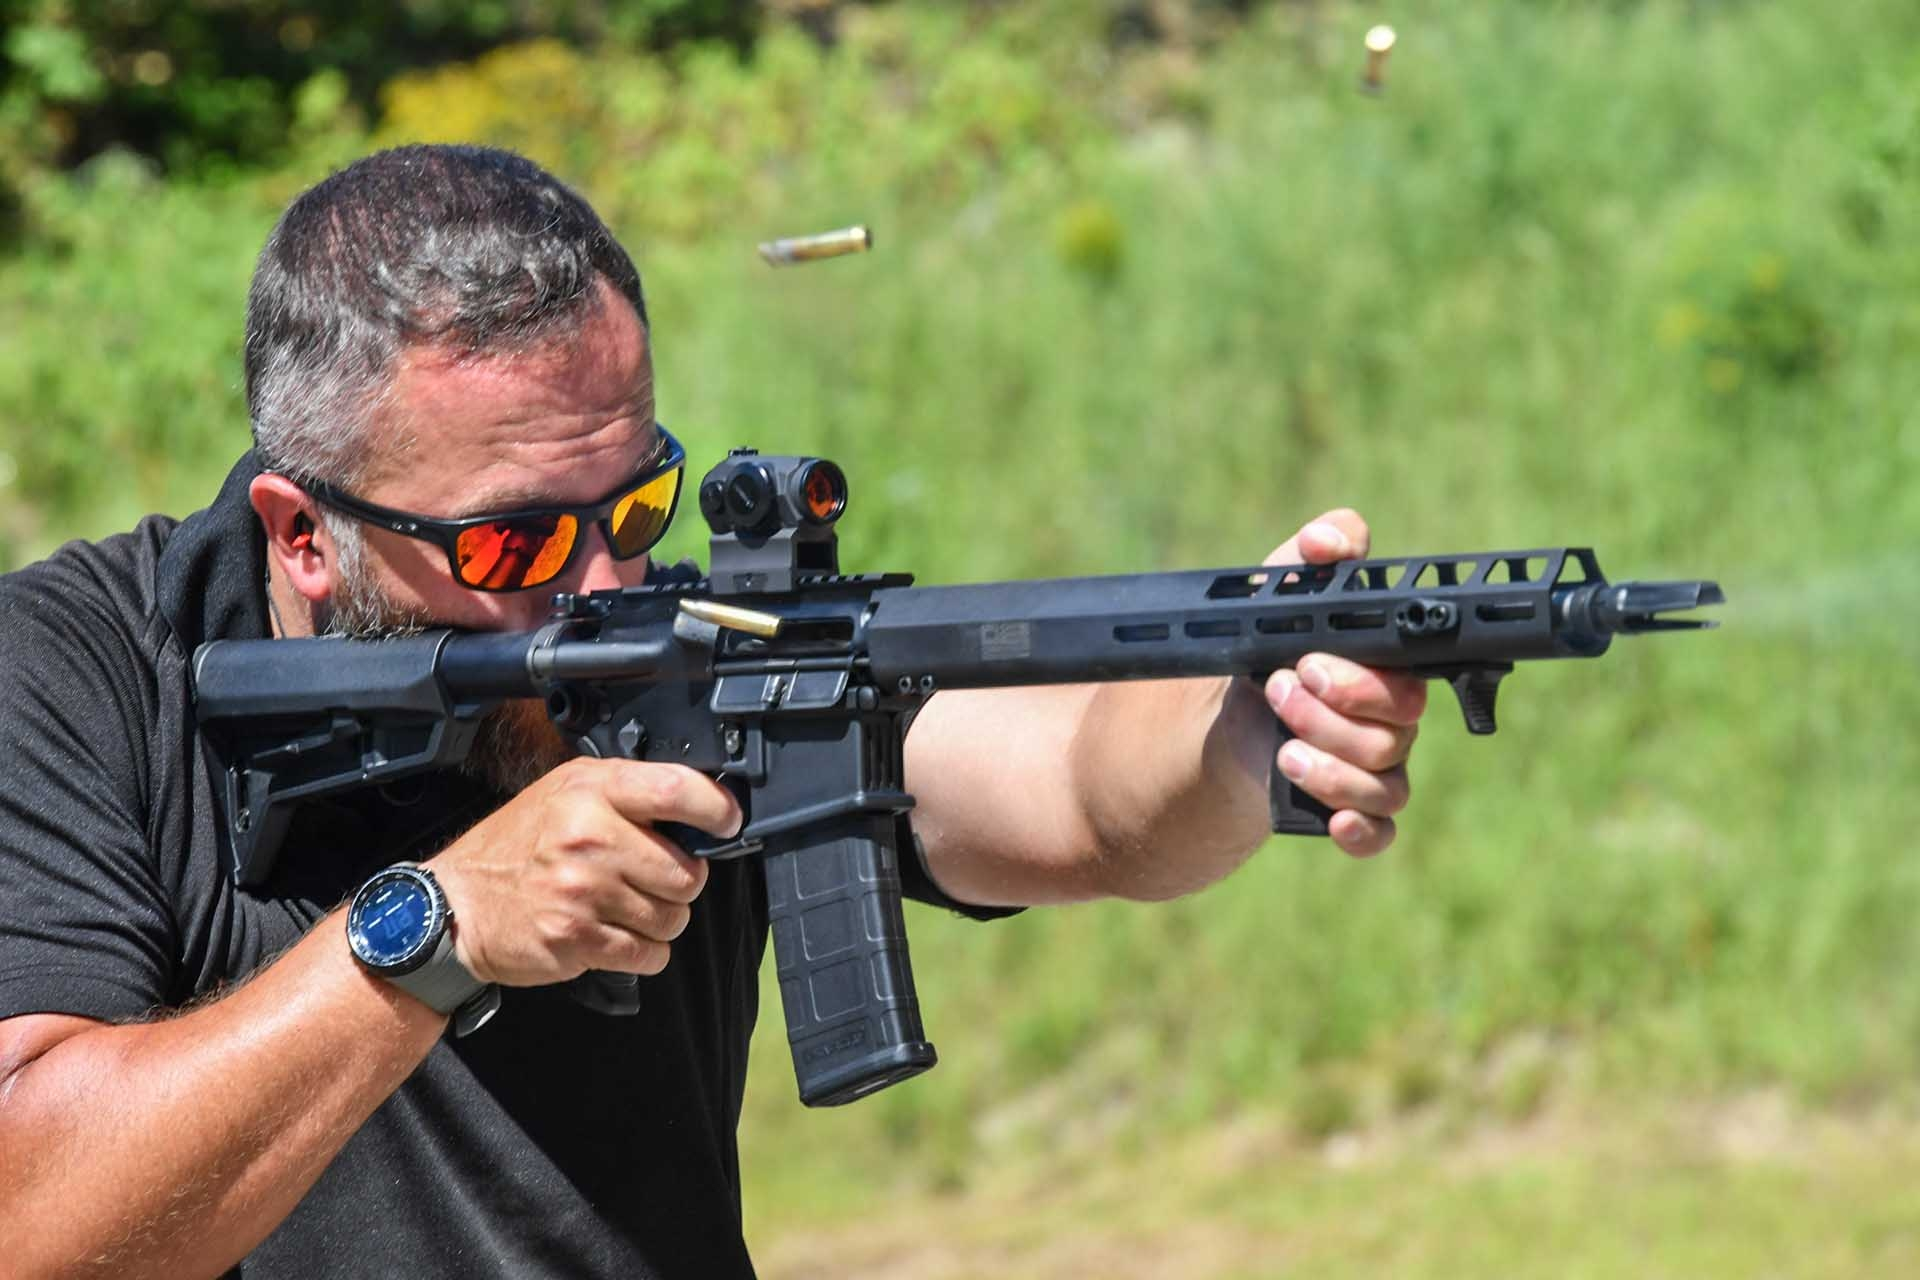 Testing the SIG Sauer M400 TREAD rifle